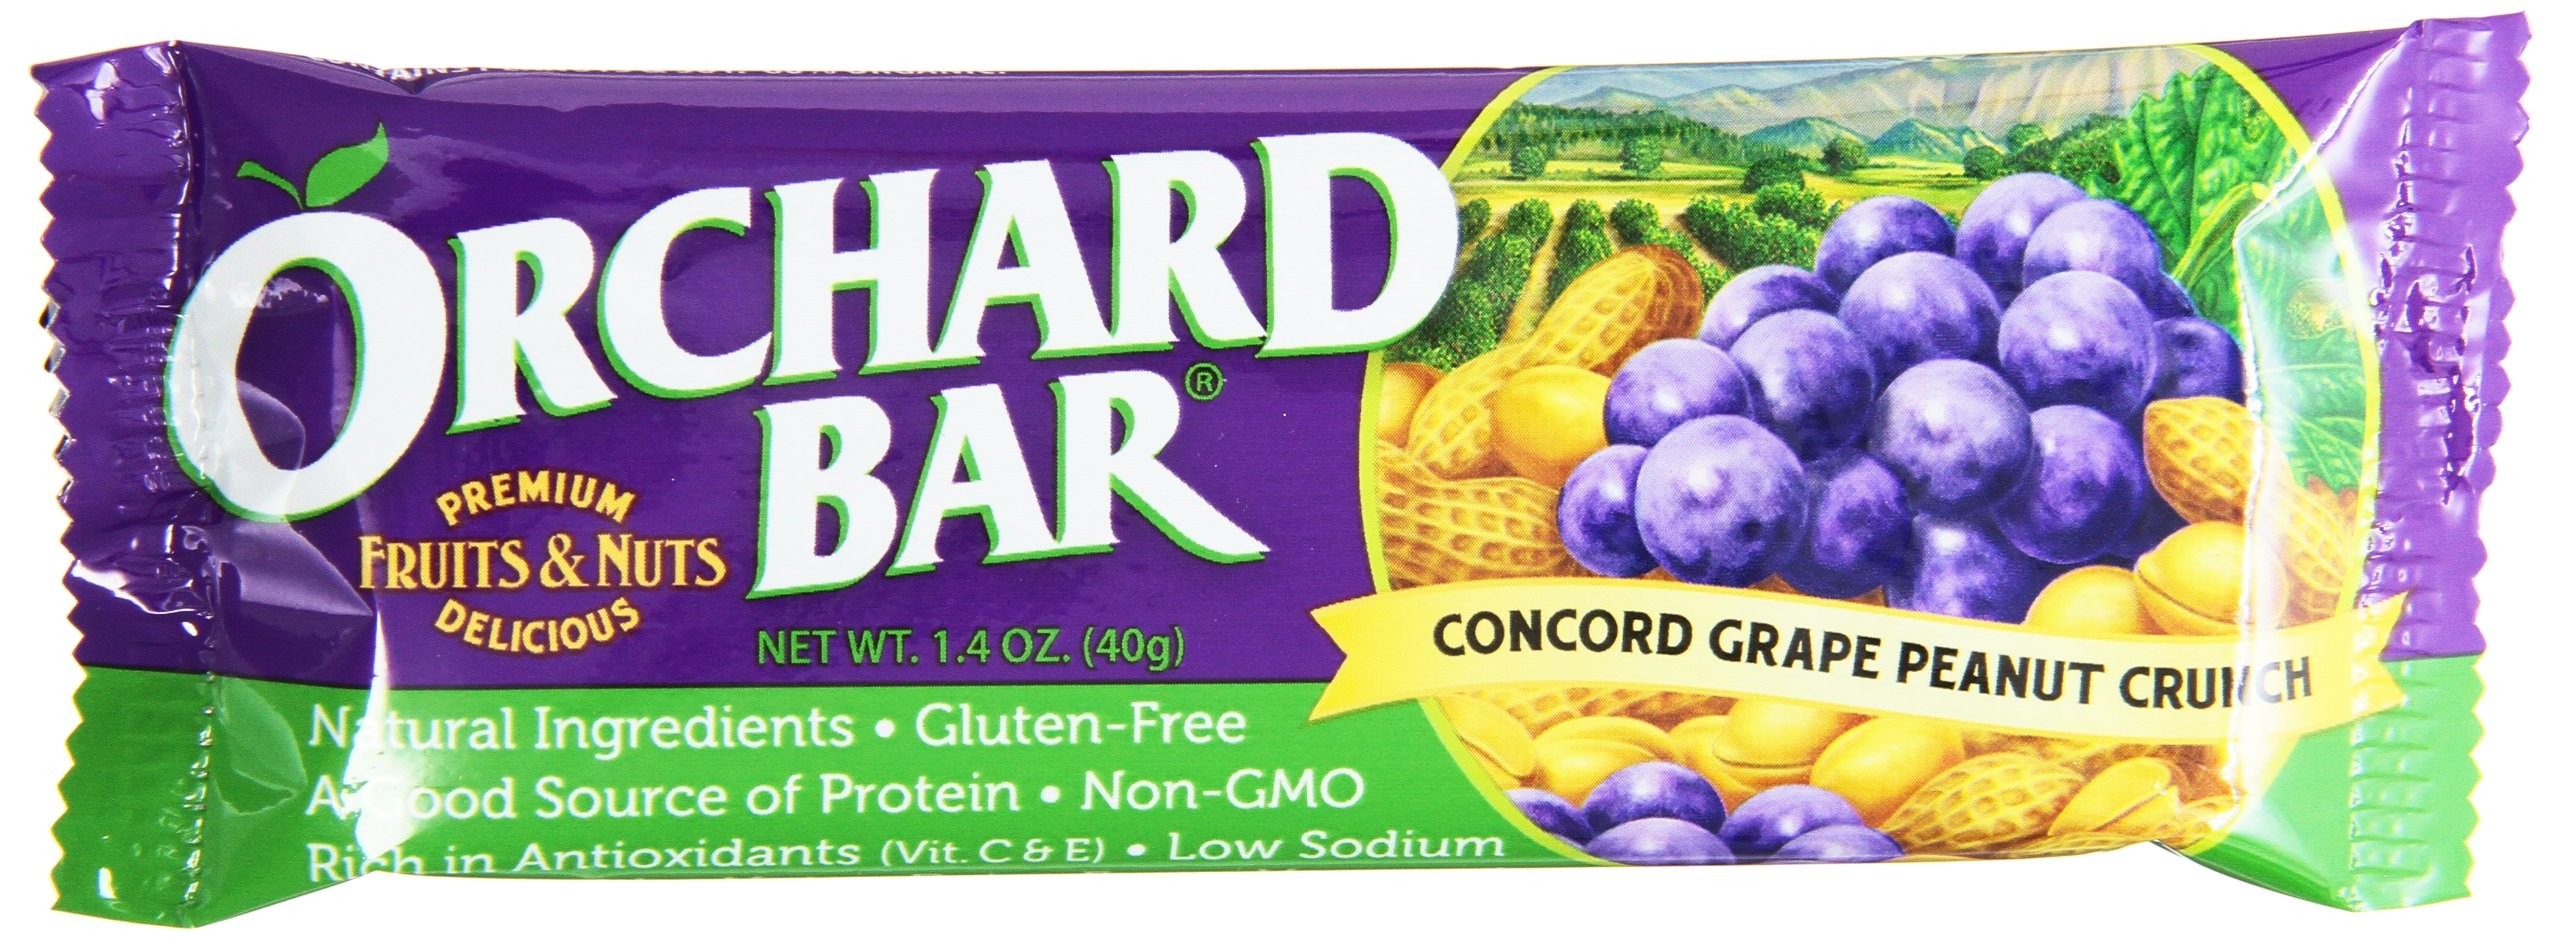 Orchard Bars Peanut Crunch Fruit and Nut Bar, Concord Grape, 1.4 Ounce (Pack of 12)